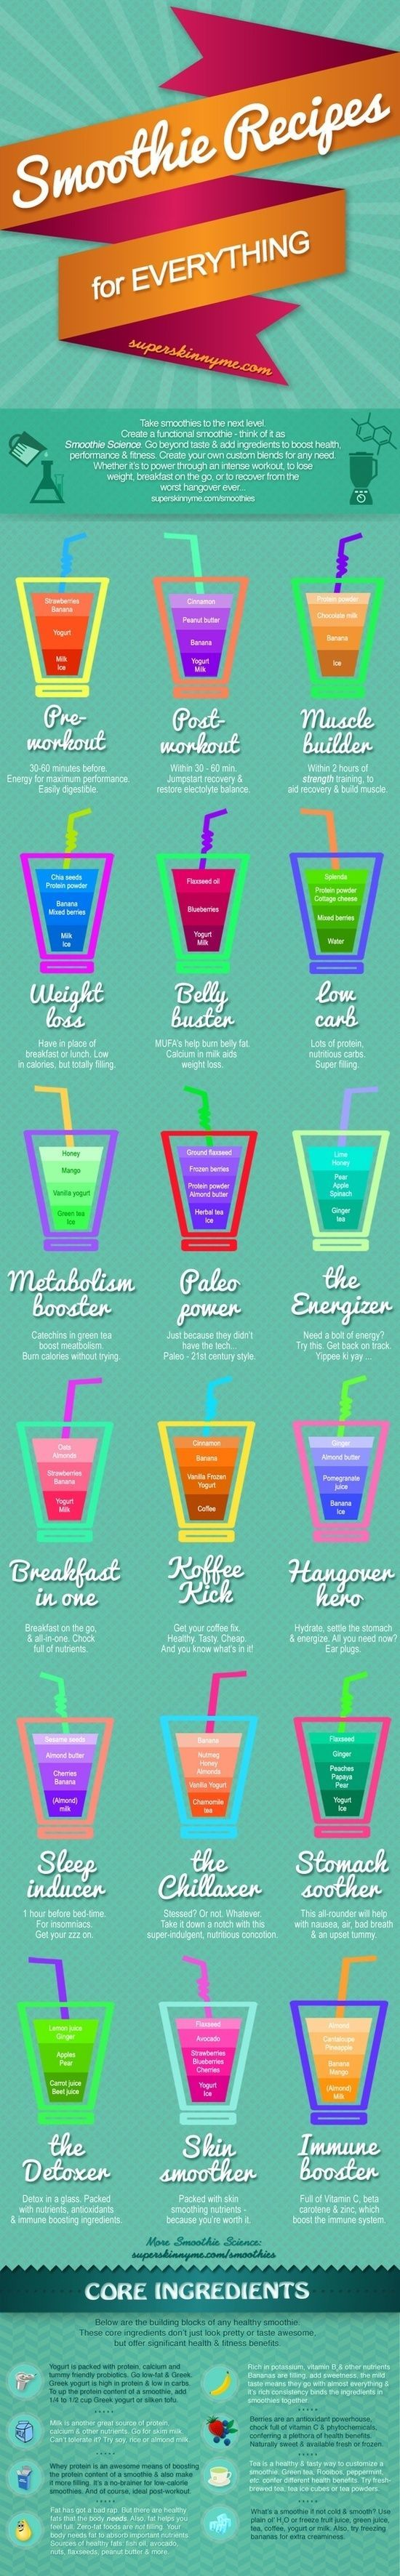 workout smoothies                                                                                                                                                                                 More